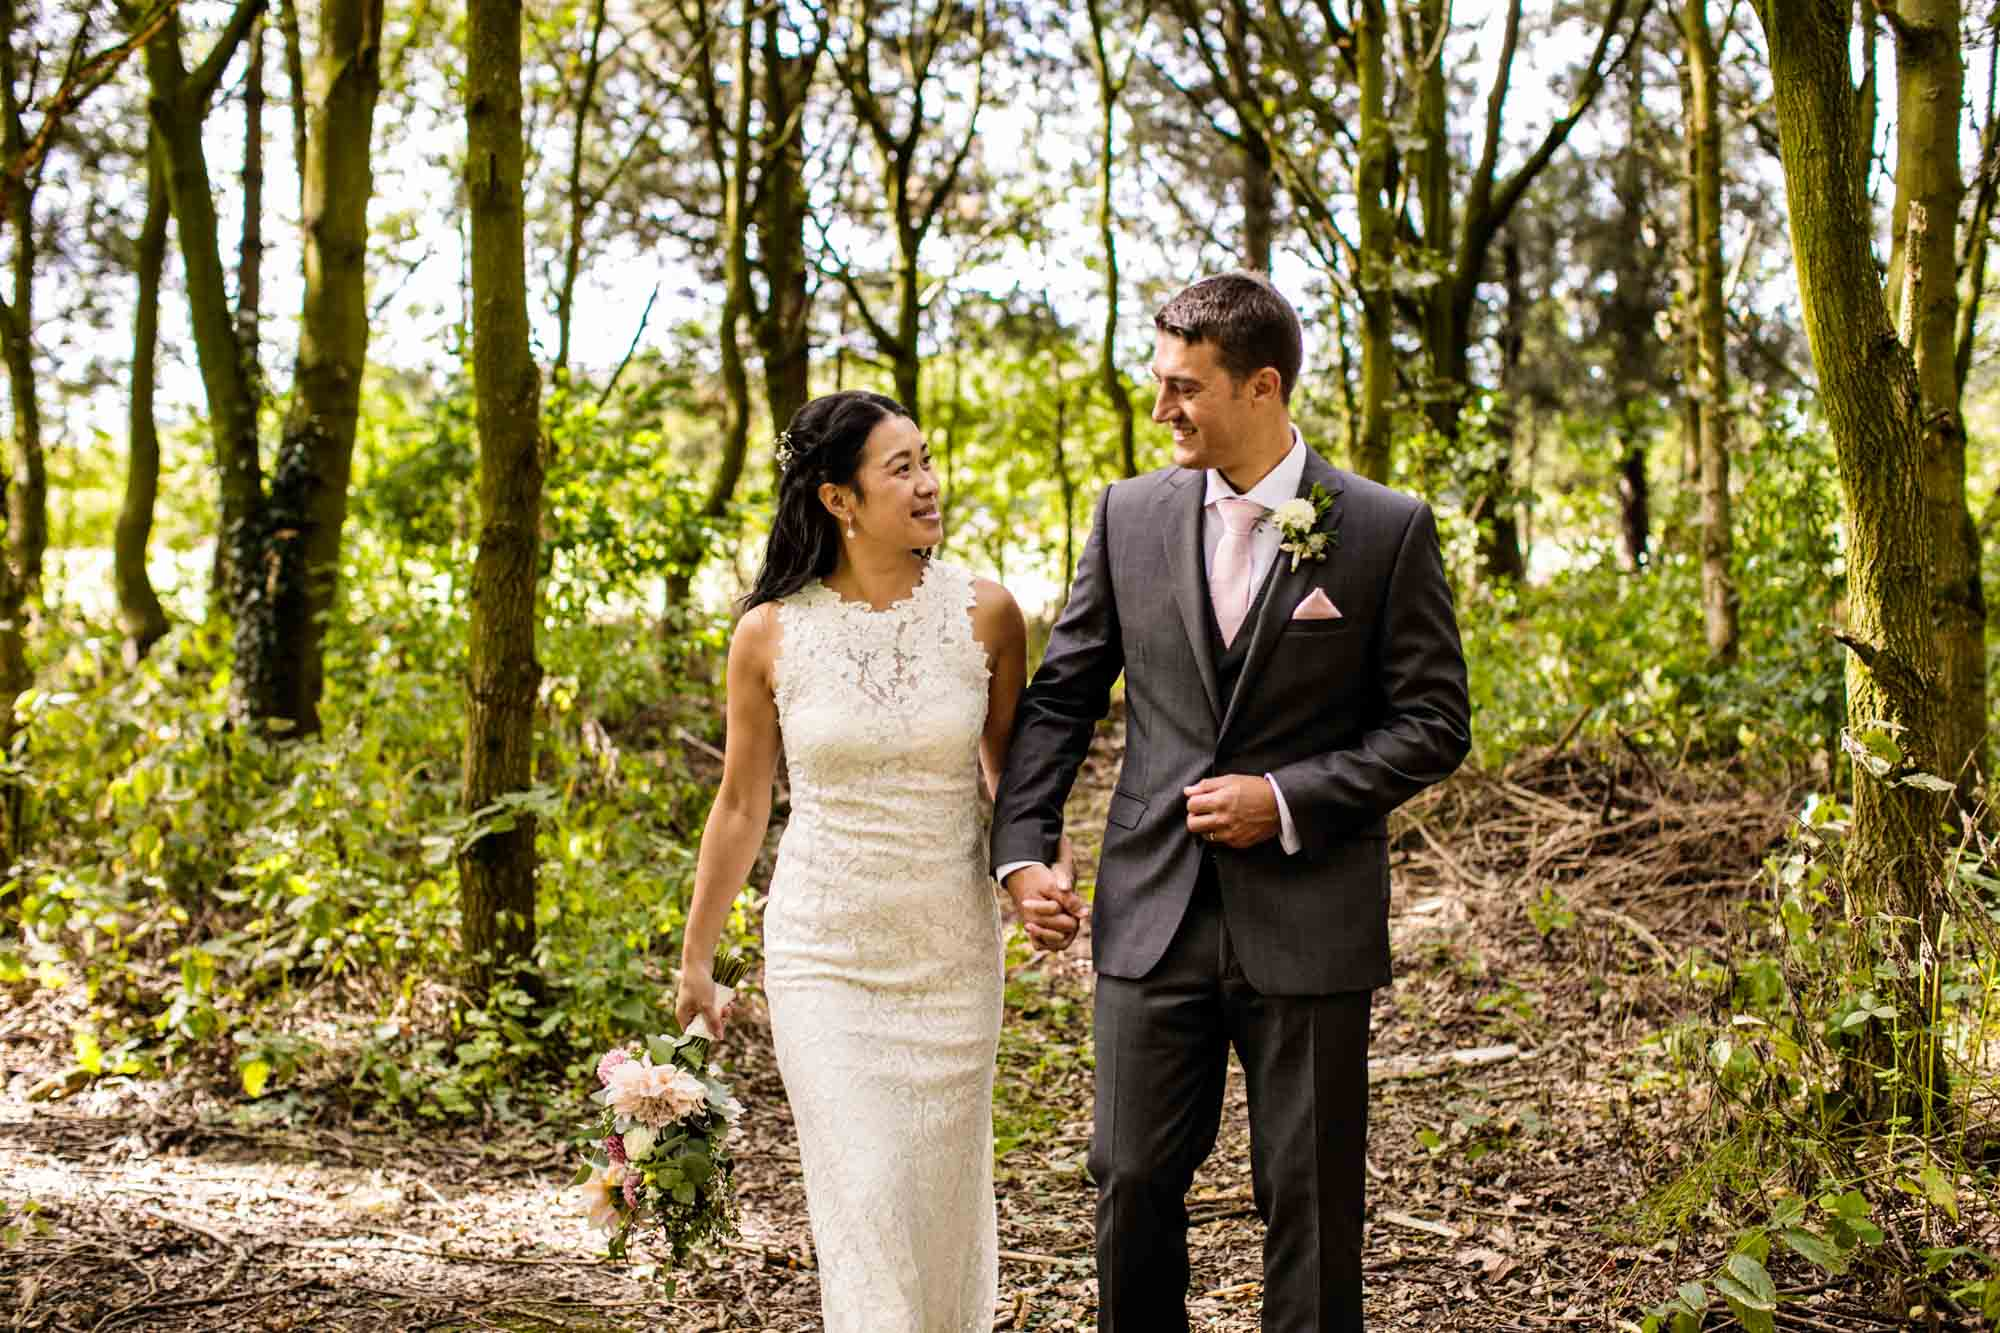 Colourful Wedding Photography Manley Mere